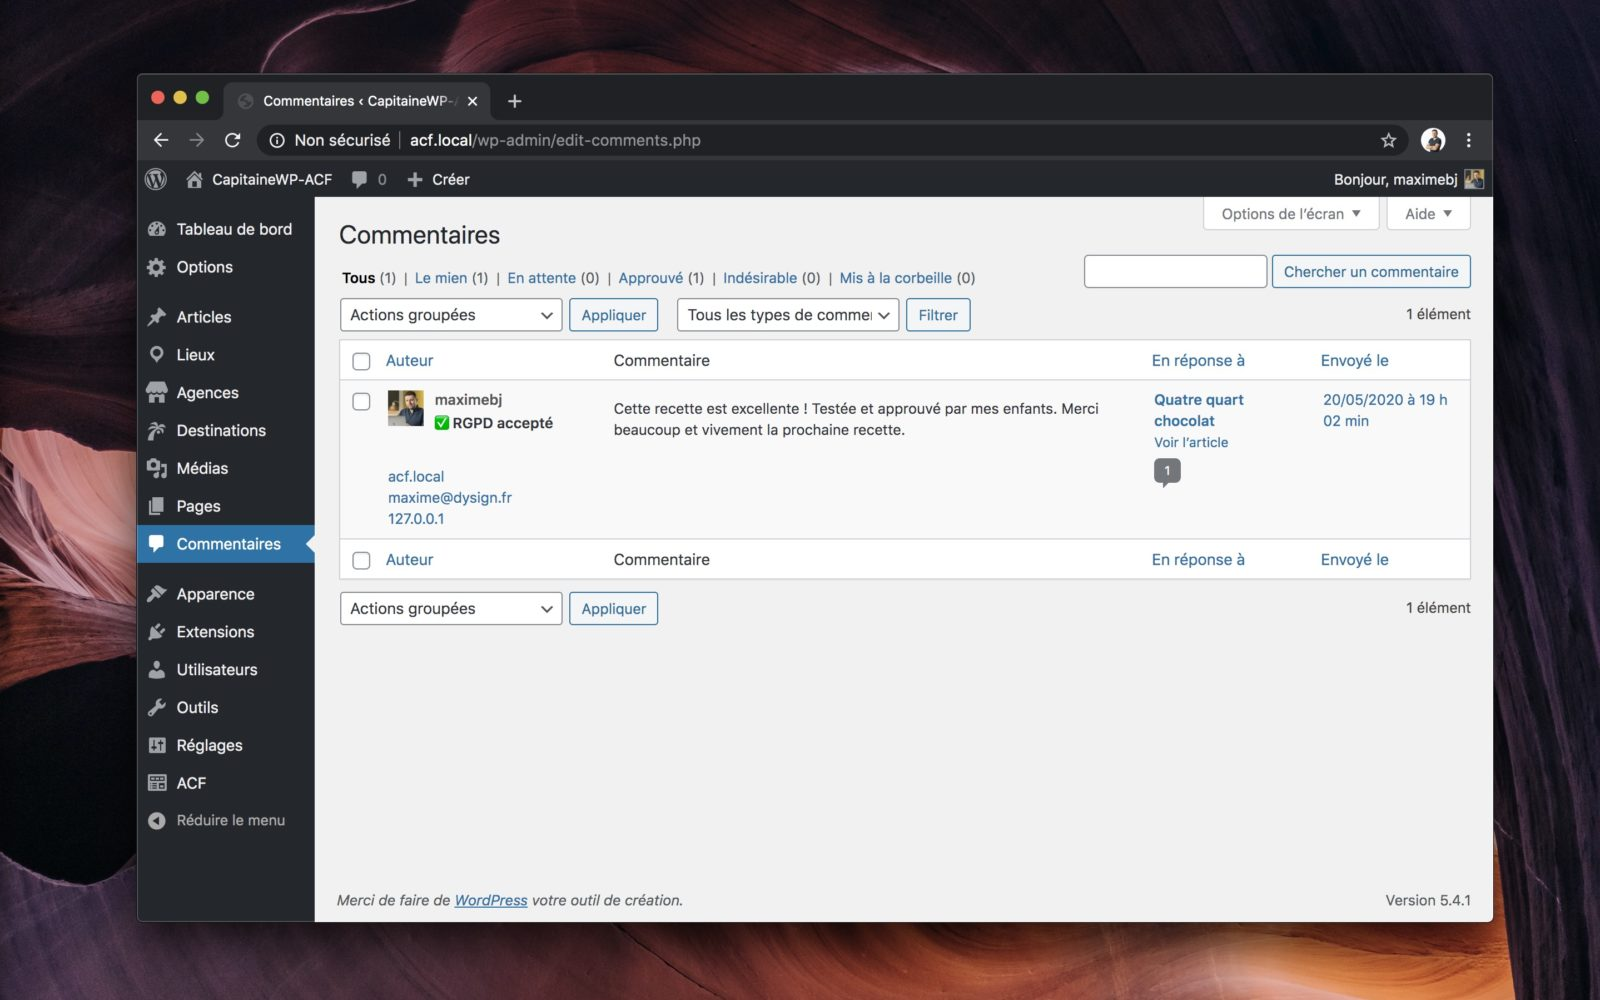 L'interface de gestion des commentaires de WordPress.